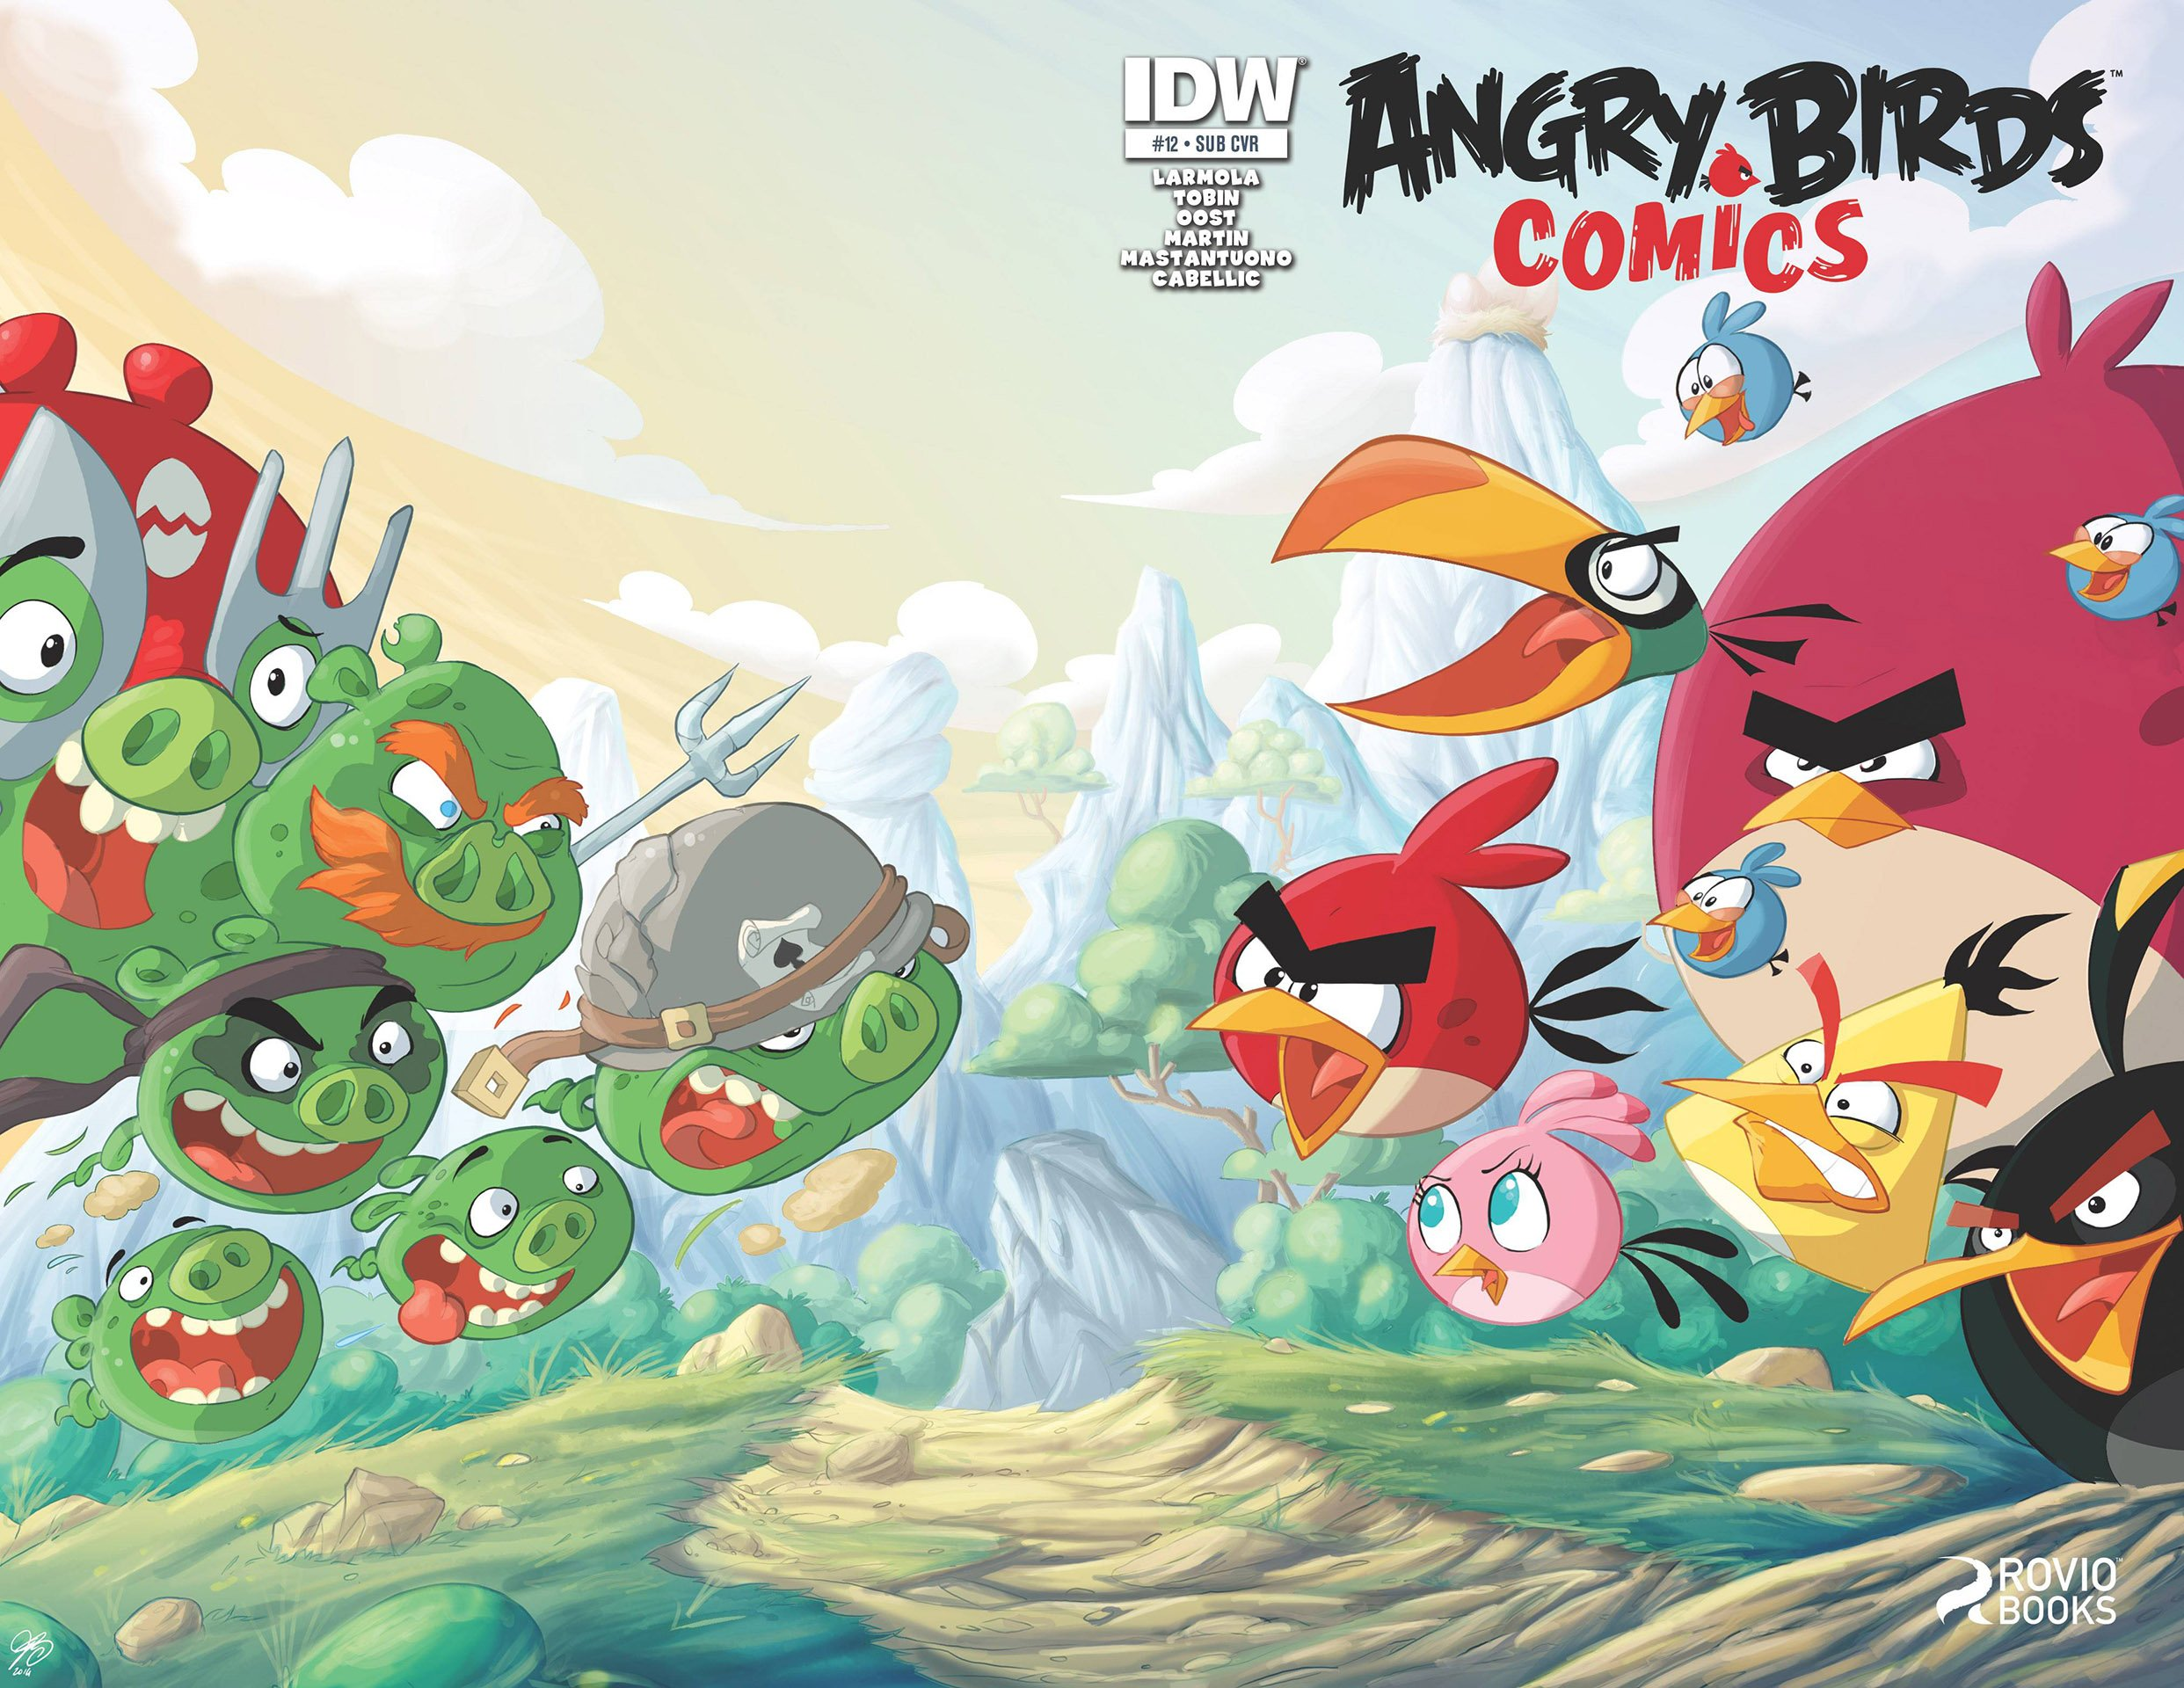 Angry Birds Comics 12 (June 2015) (subscriber cover)